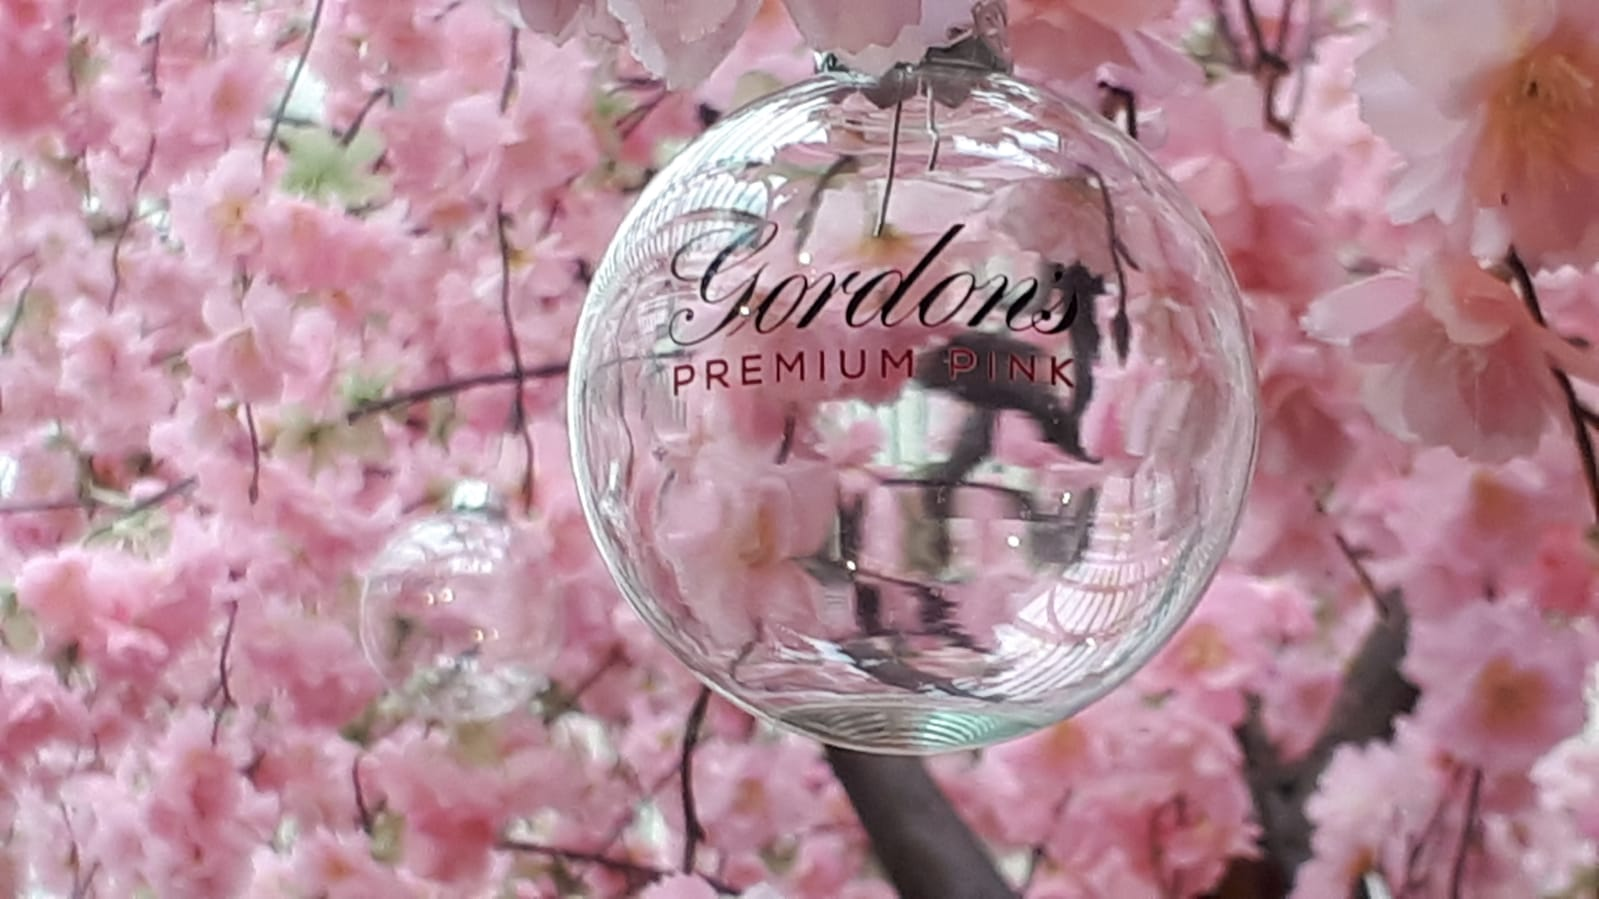 Bespoke clear glass bauble with Gordons Gin branding hanging from October Glasgow's cherry blossom tree